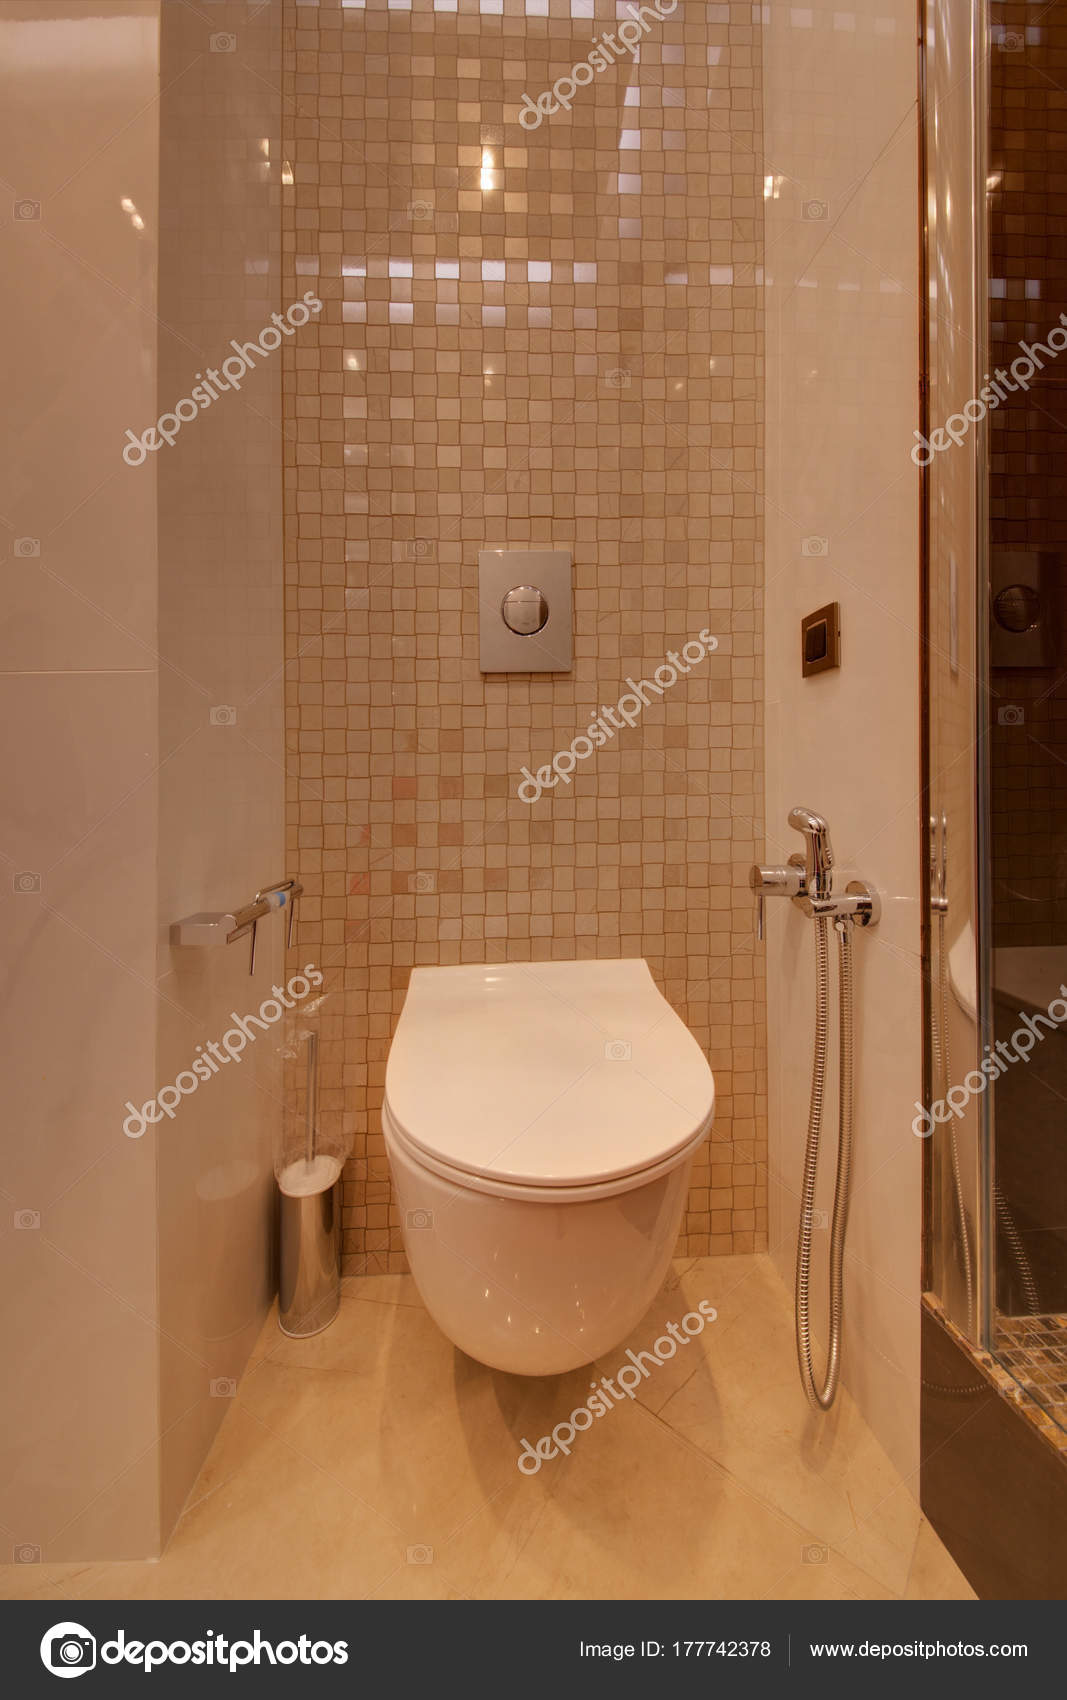 White Toilet Bowl Hygienic Shower Installation Wall — Stock Photo ...